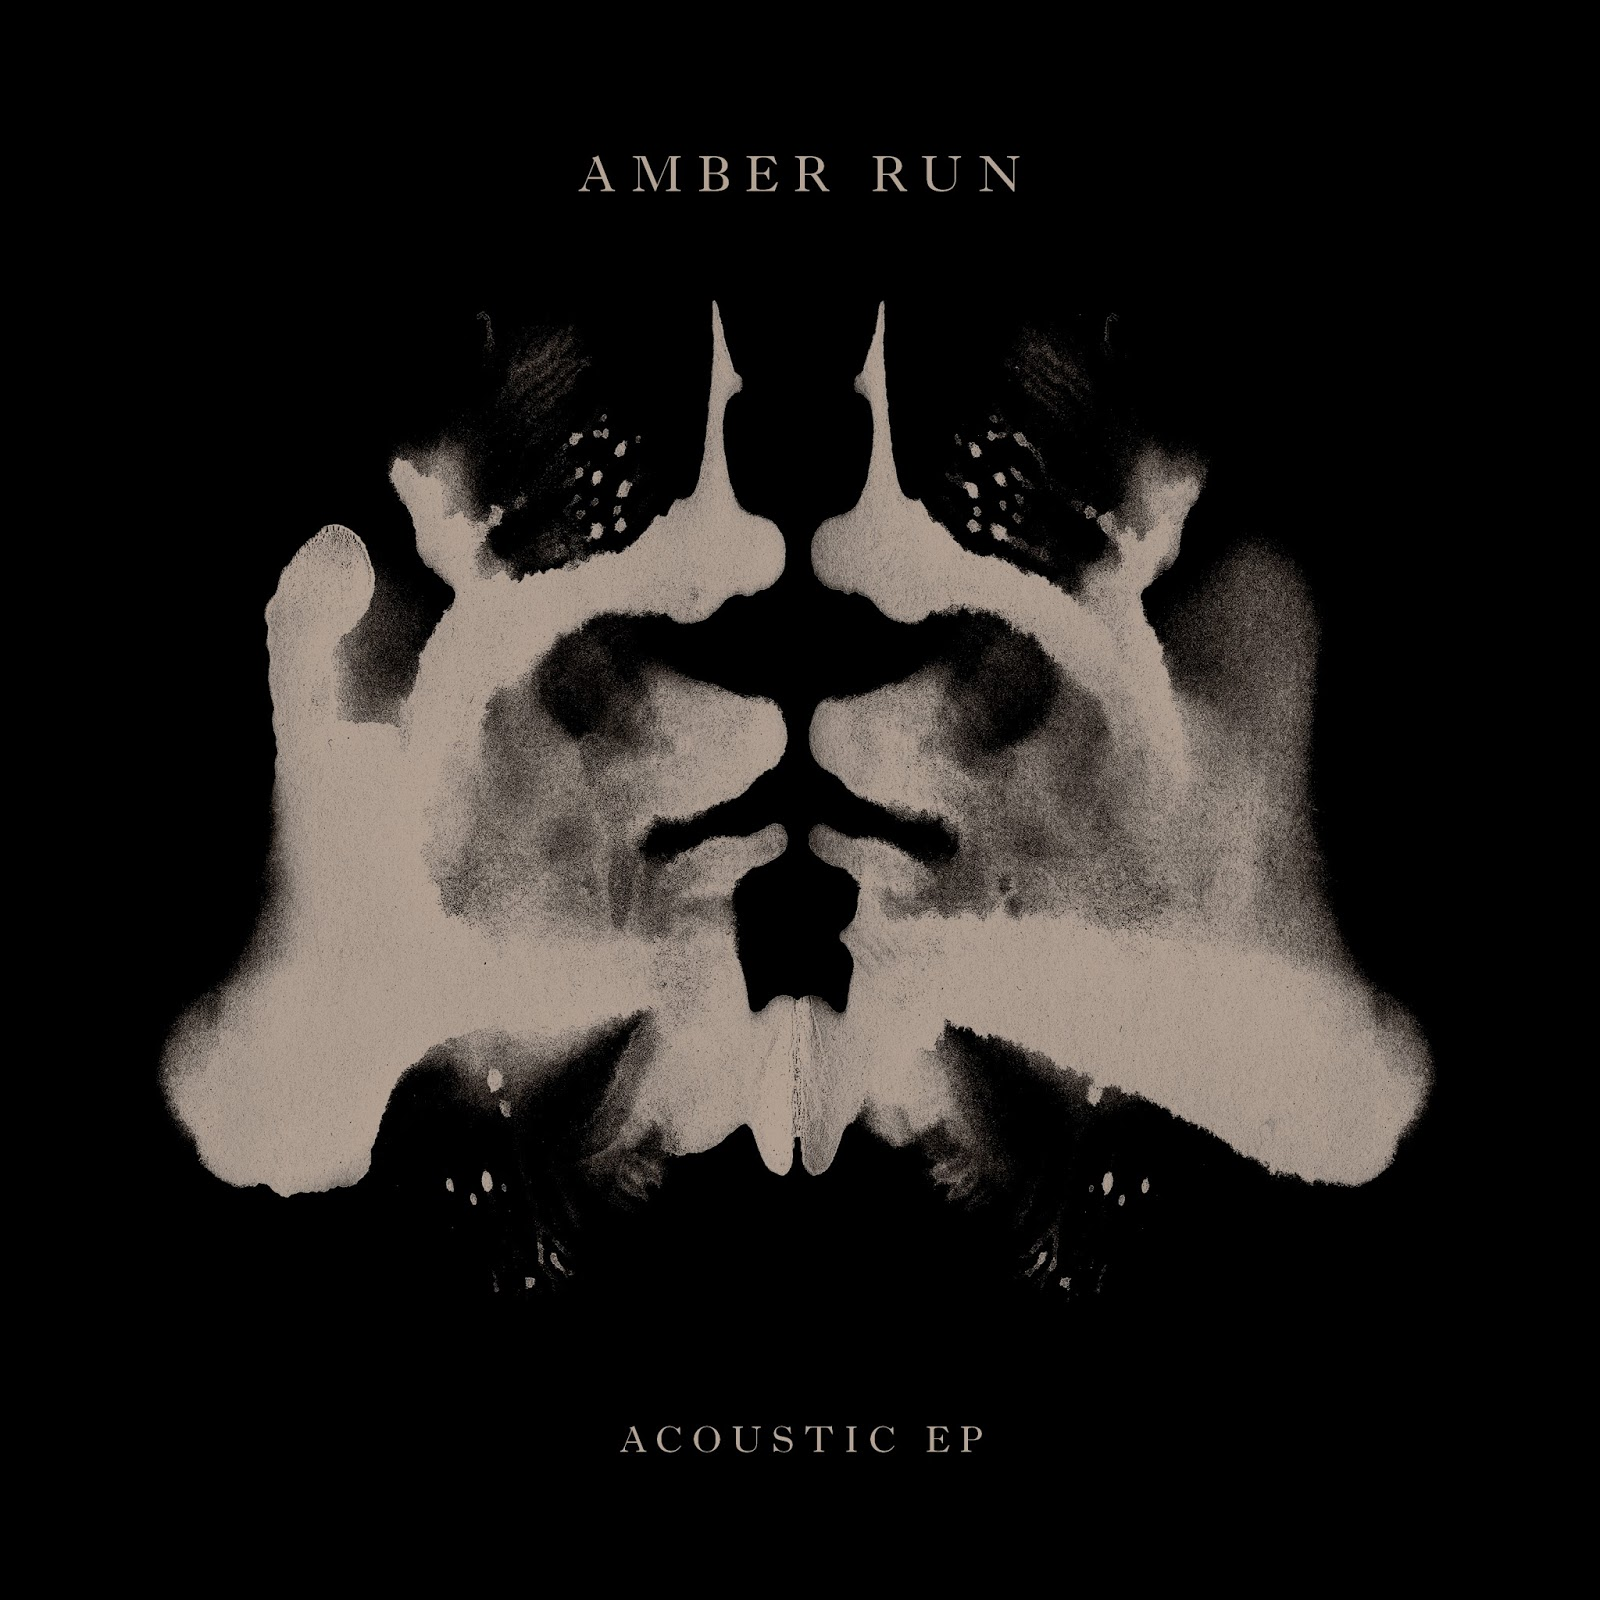 Amber run acoustic ep nataliezworld amber run have gone the way with the acoustics with their acoustic ep release the ep takes two tracks off their current album for a moment hexwebz Choice Image